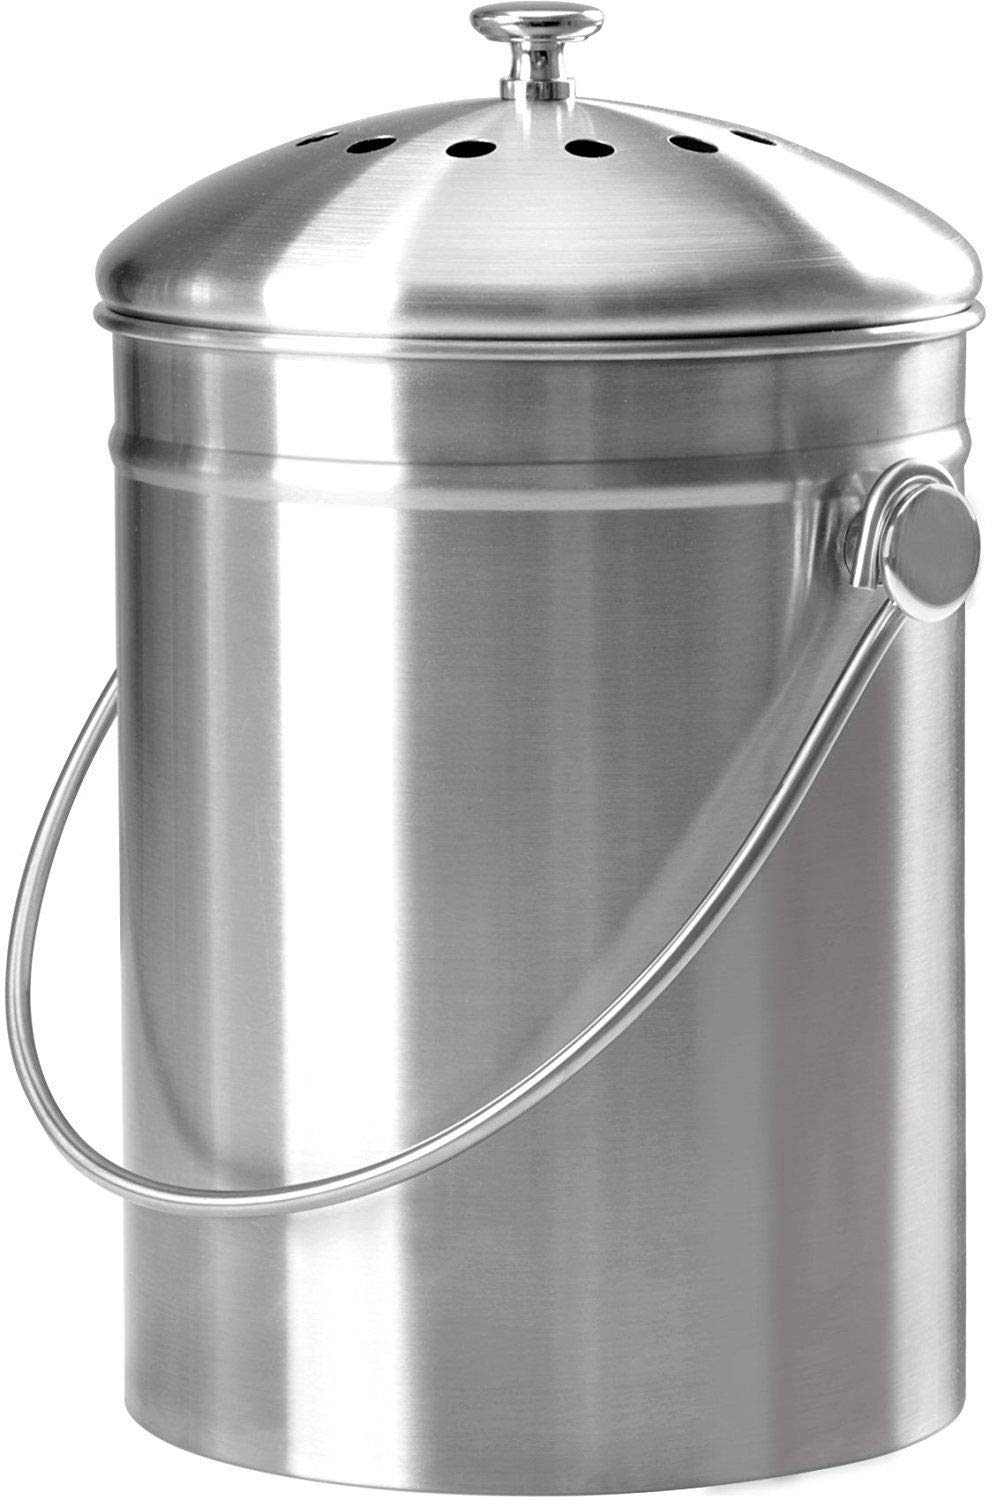 Compost Bin Kitchen Indoor Outdoor Counter-top Charcoal Filter 1.3 Gallon by Skallywags Depot